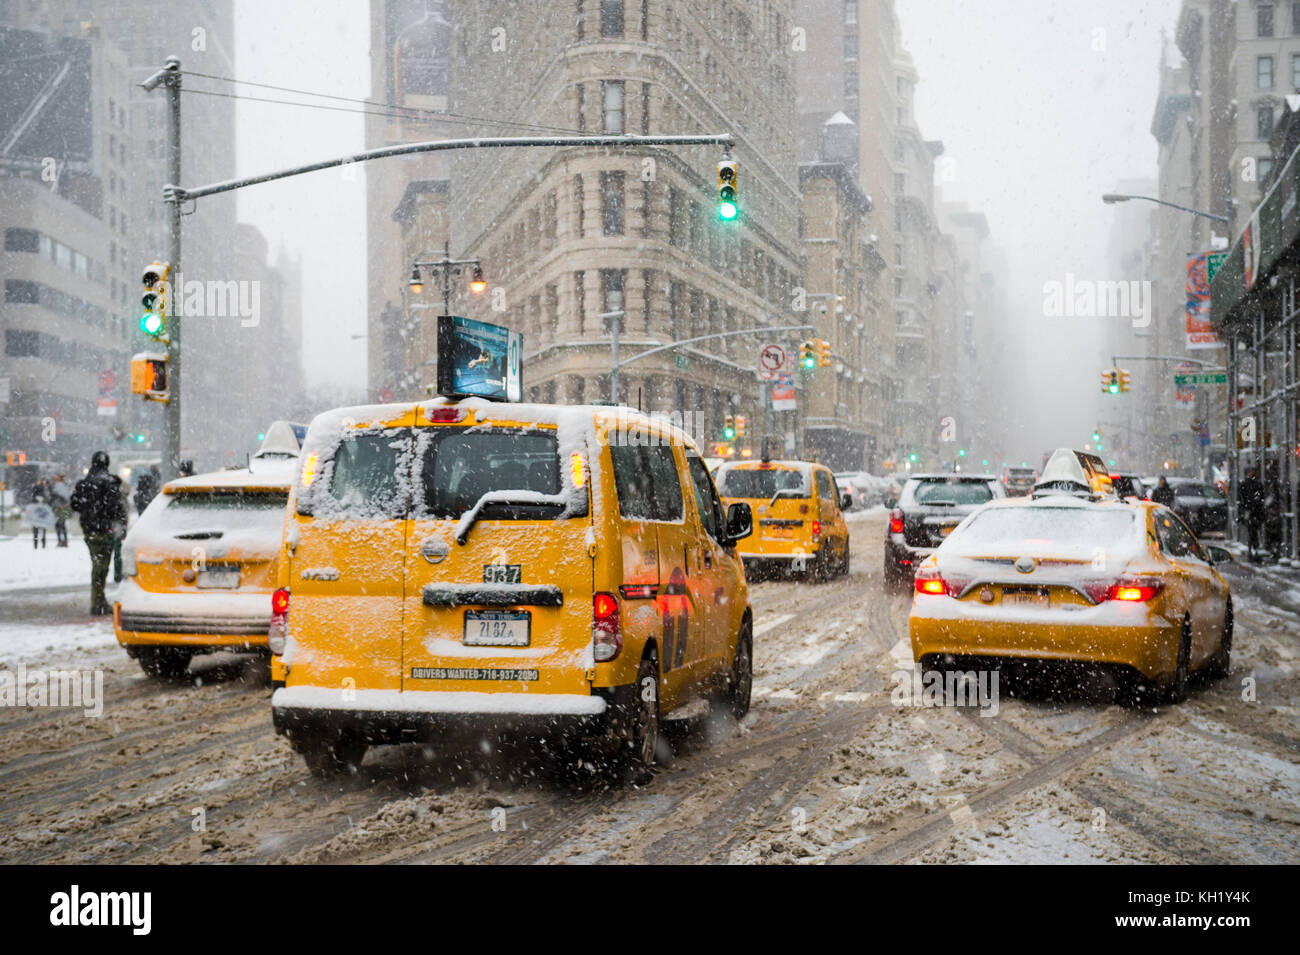 NEW YORK CITY - JANUARY 7, 2016: A winter snowstorm brings traffic and pedestrians to a slow crawl at the Flatiron Stock Photo